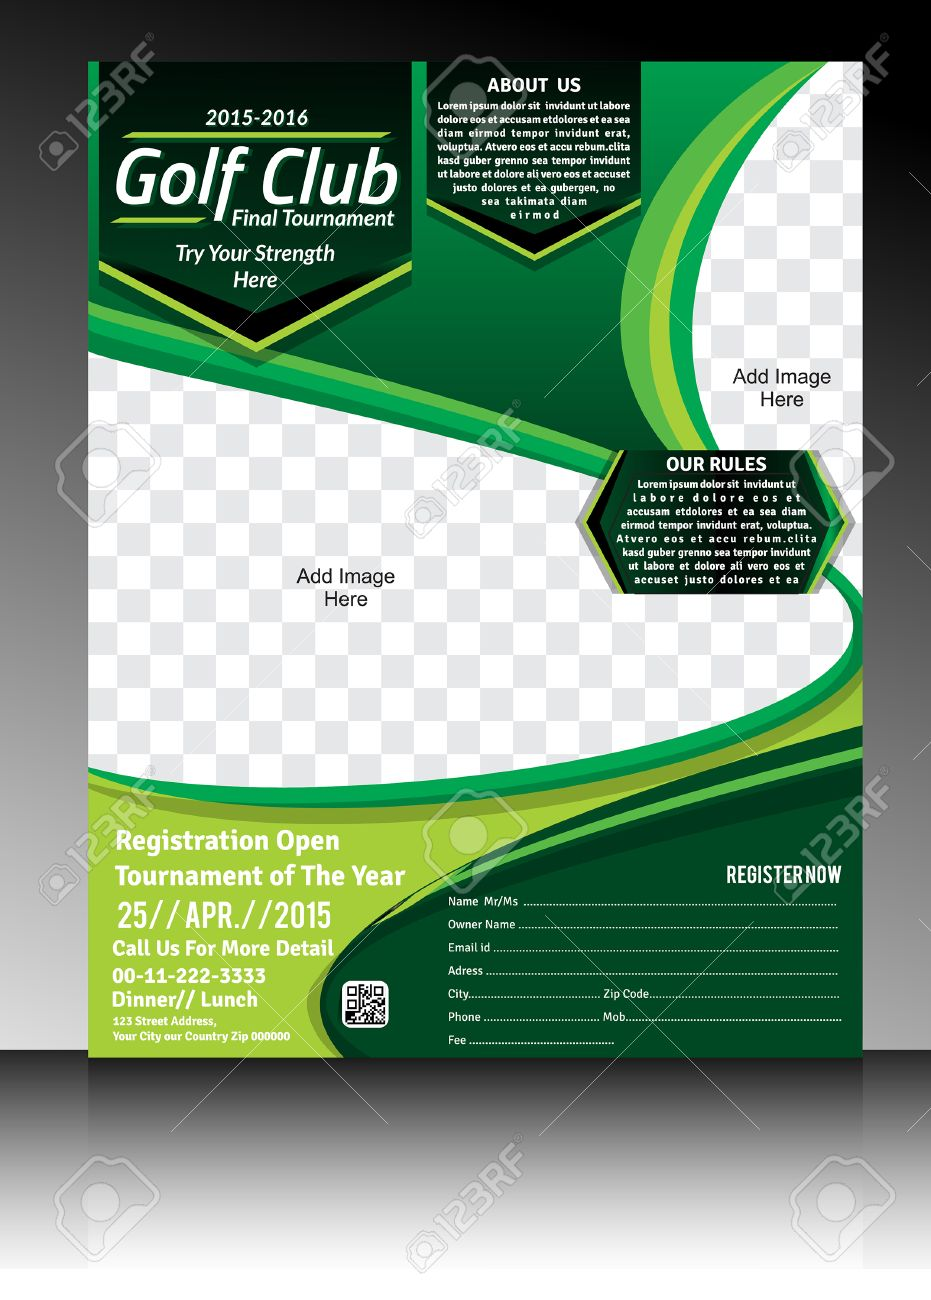 golf flyer template illustration royalty cliparts vectors vector golf flyer template illustration